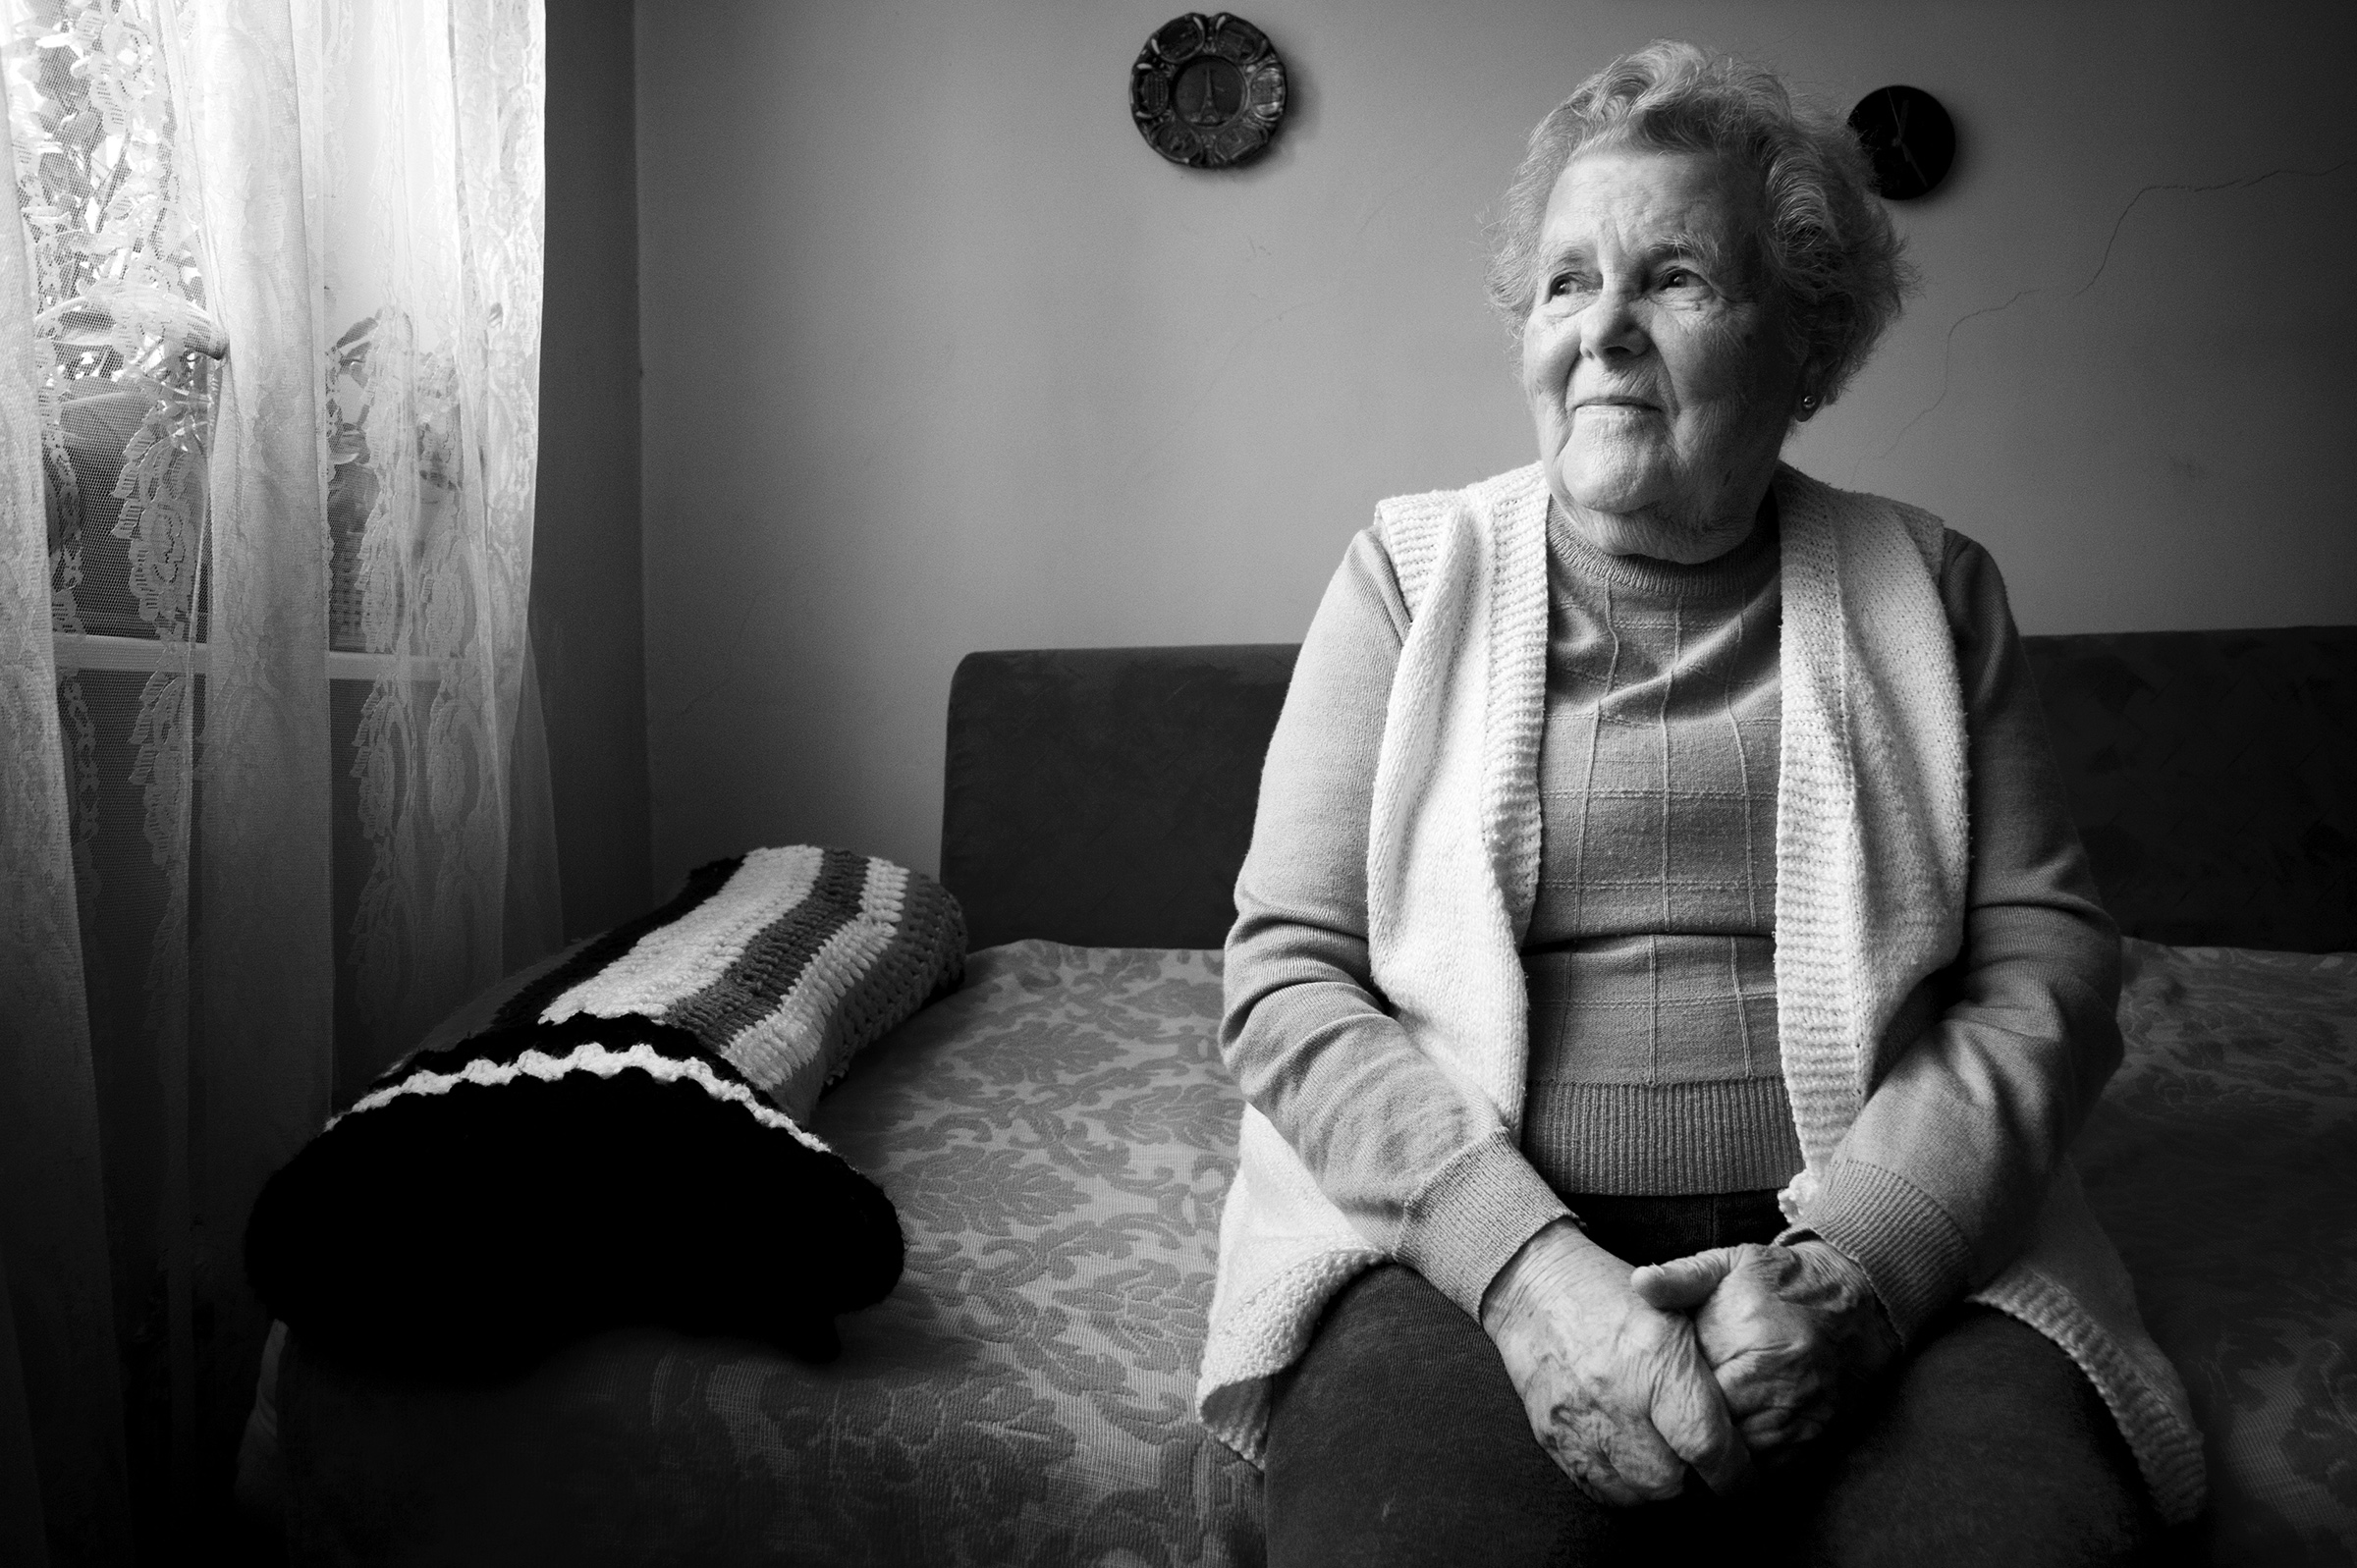 Vioara 'Ibby' Braun (Rosenzweig), 87, poses for a portrait in her home in Oradea, Romania on January 9, 2015. Born in Marghita, Romania, a town under Hungarian control during the war, Braun was deported at the age of seventeen to the Bergen Belsen concentration camp. She survived to be married her late husband, Tiberiu, an Auschwitz survivor. After the war, Braun would spend five years working for the Women's Anti-Fascist Union in Romania, and later as a secretary for the Women's Democratic Union. (Photo by Daniel Owen/GroundTruth)